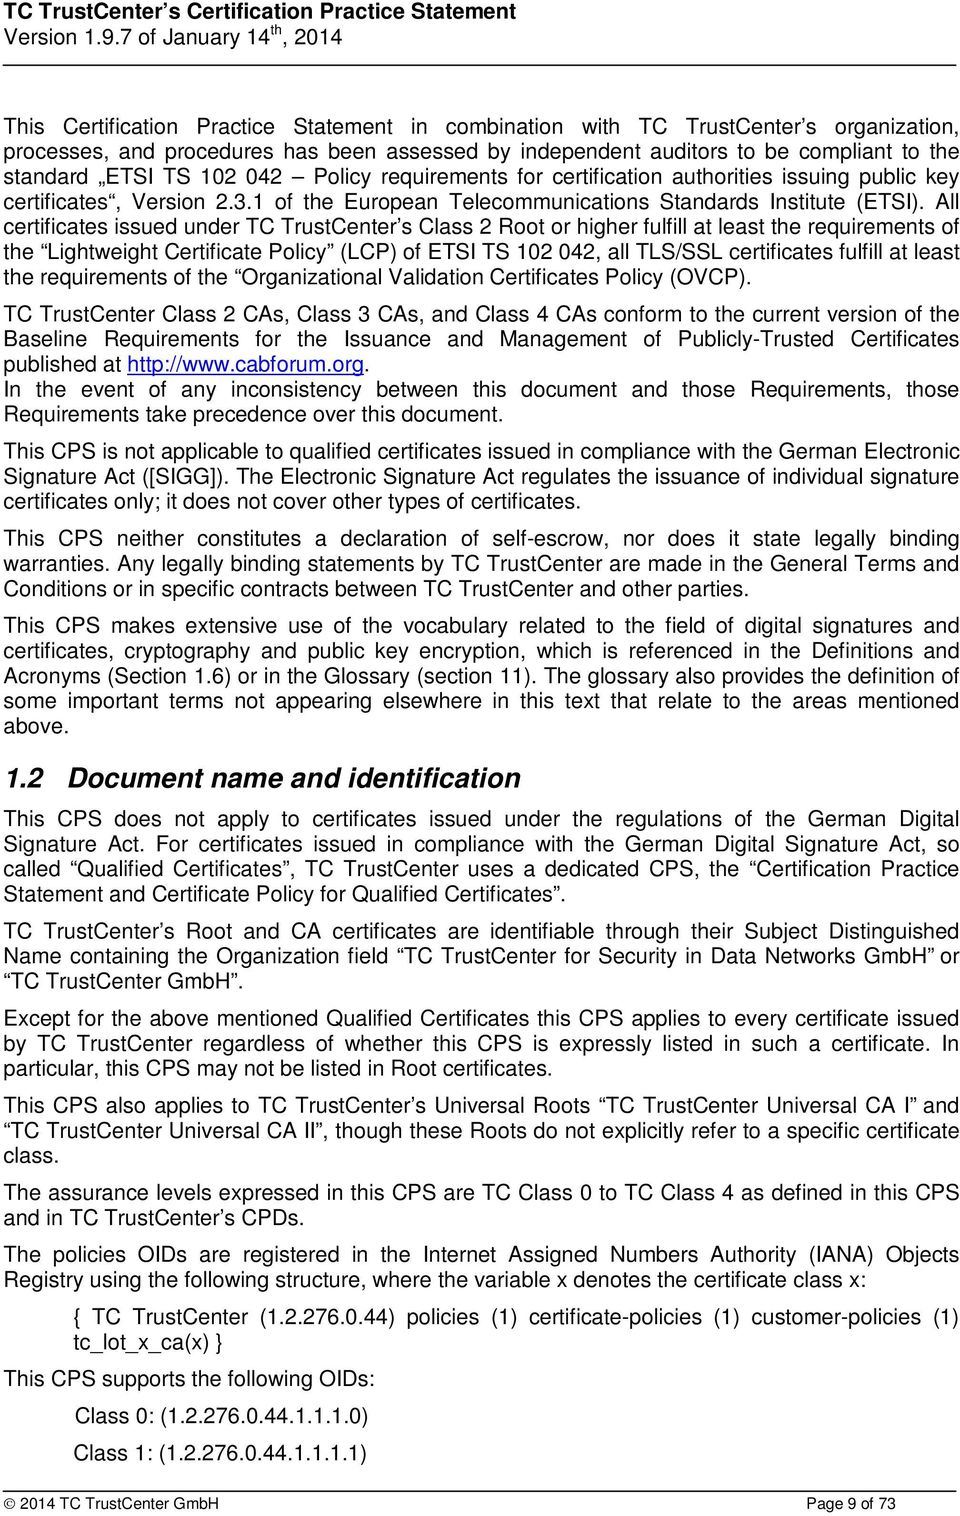 All certificates issued under TC TrustCenter s Class 2 Root or higher fulfill at least the requirements of the Lightweight Certificate Policy (LCP) of ETSI TS 102 042, all TLS/SSL certificates